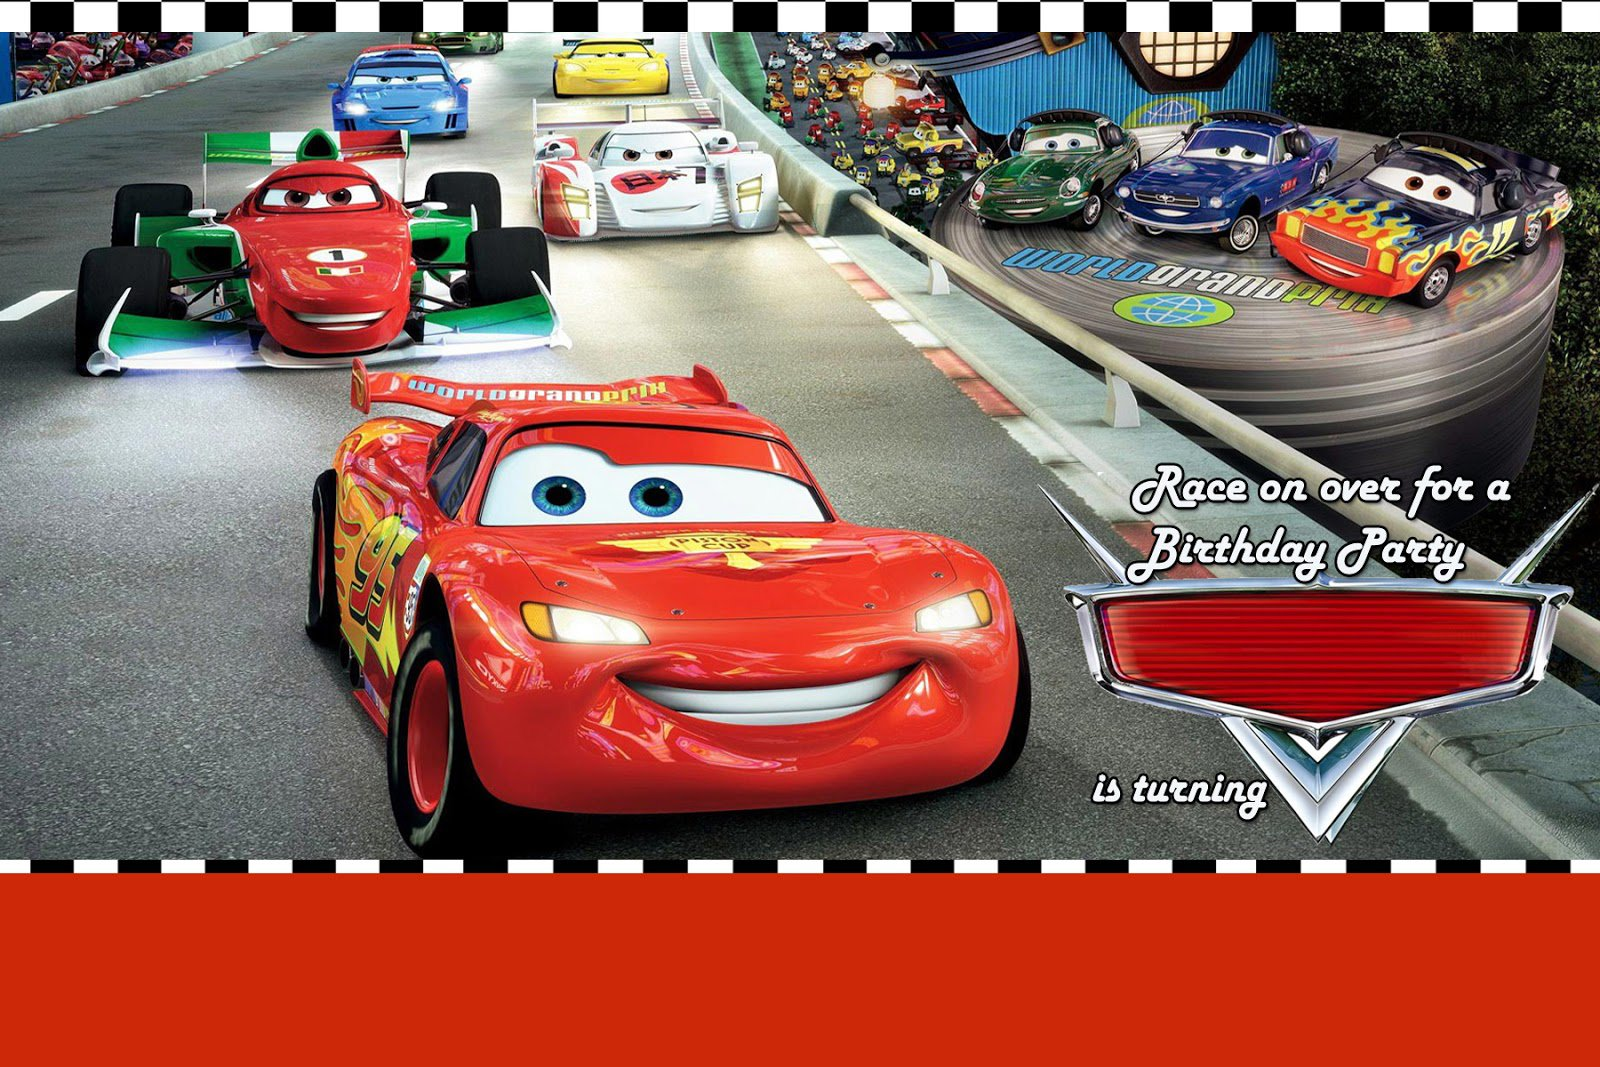 Disney Cars Birthday Party Invitations printed wedding place cards – Disney Cars Birthday Cards